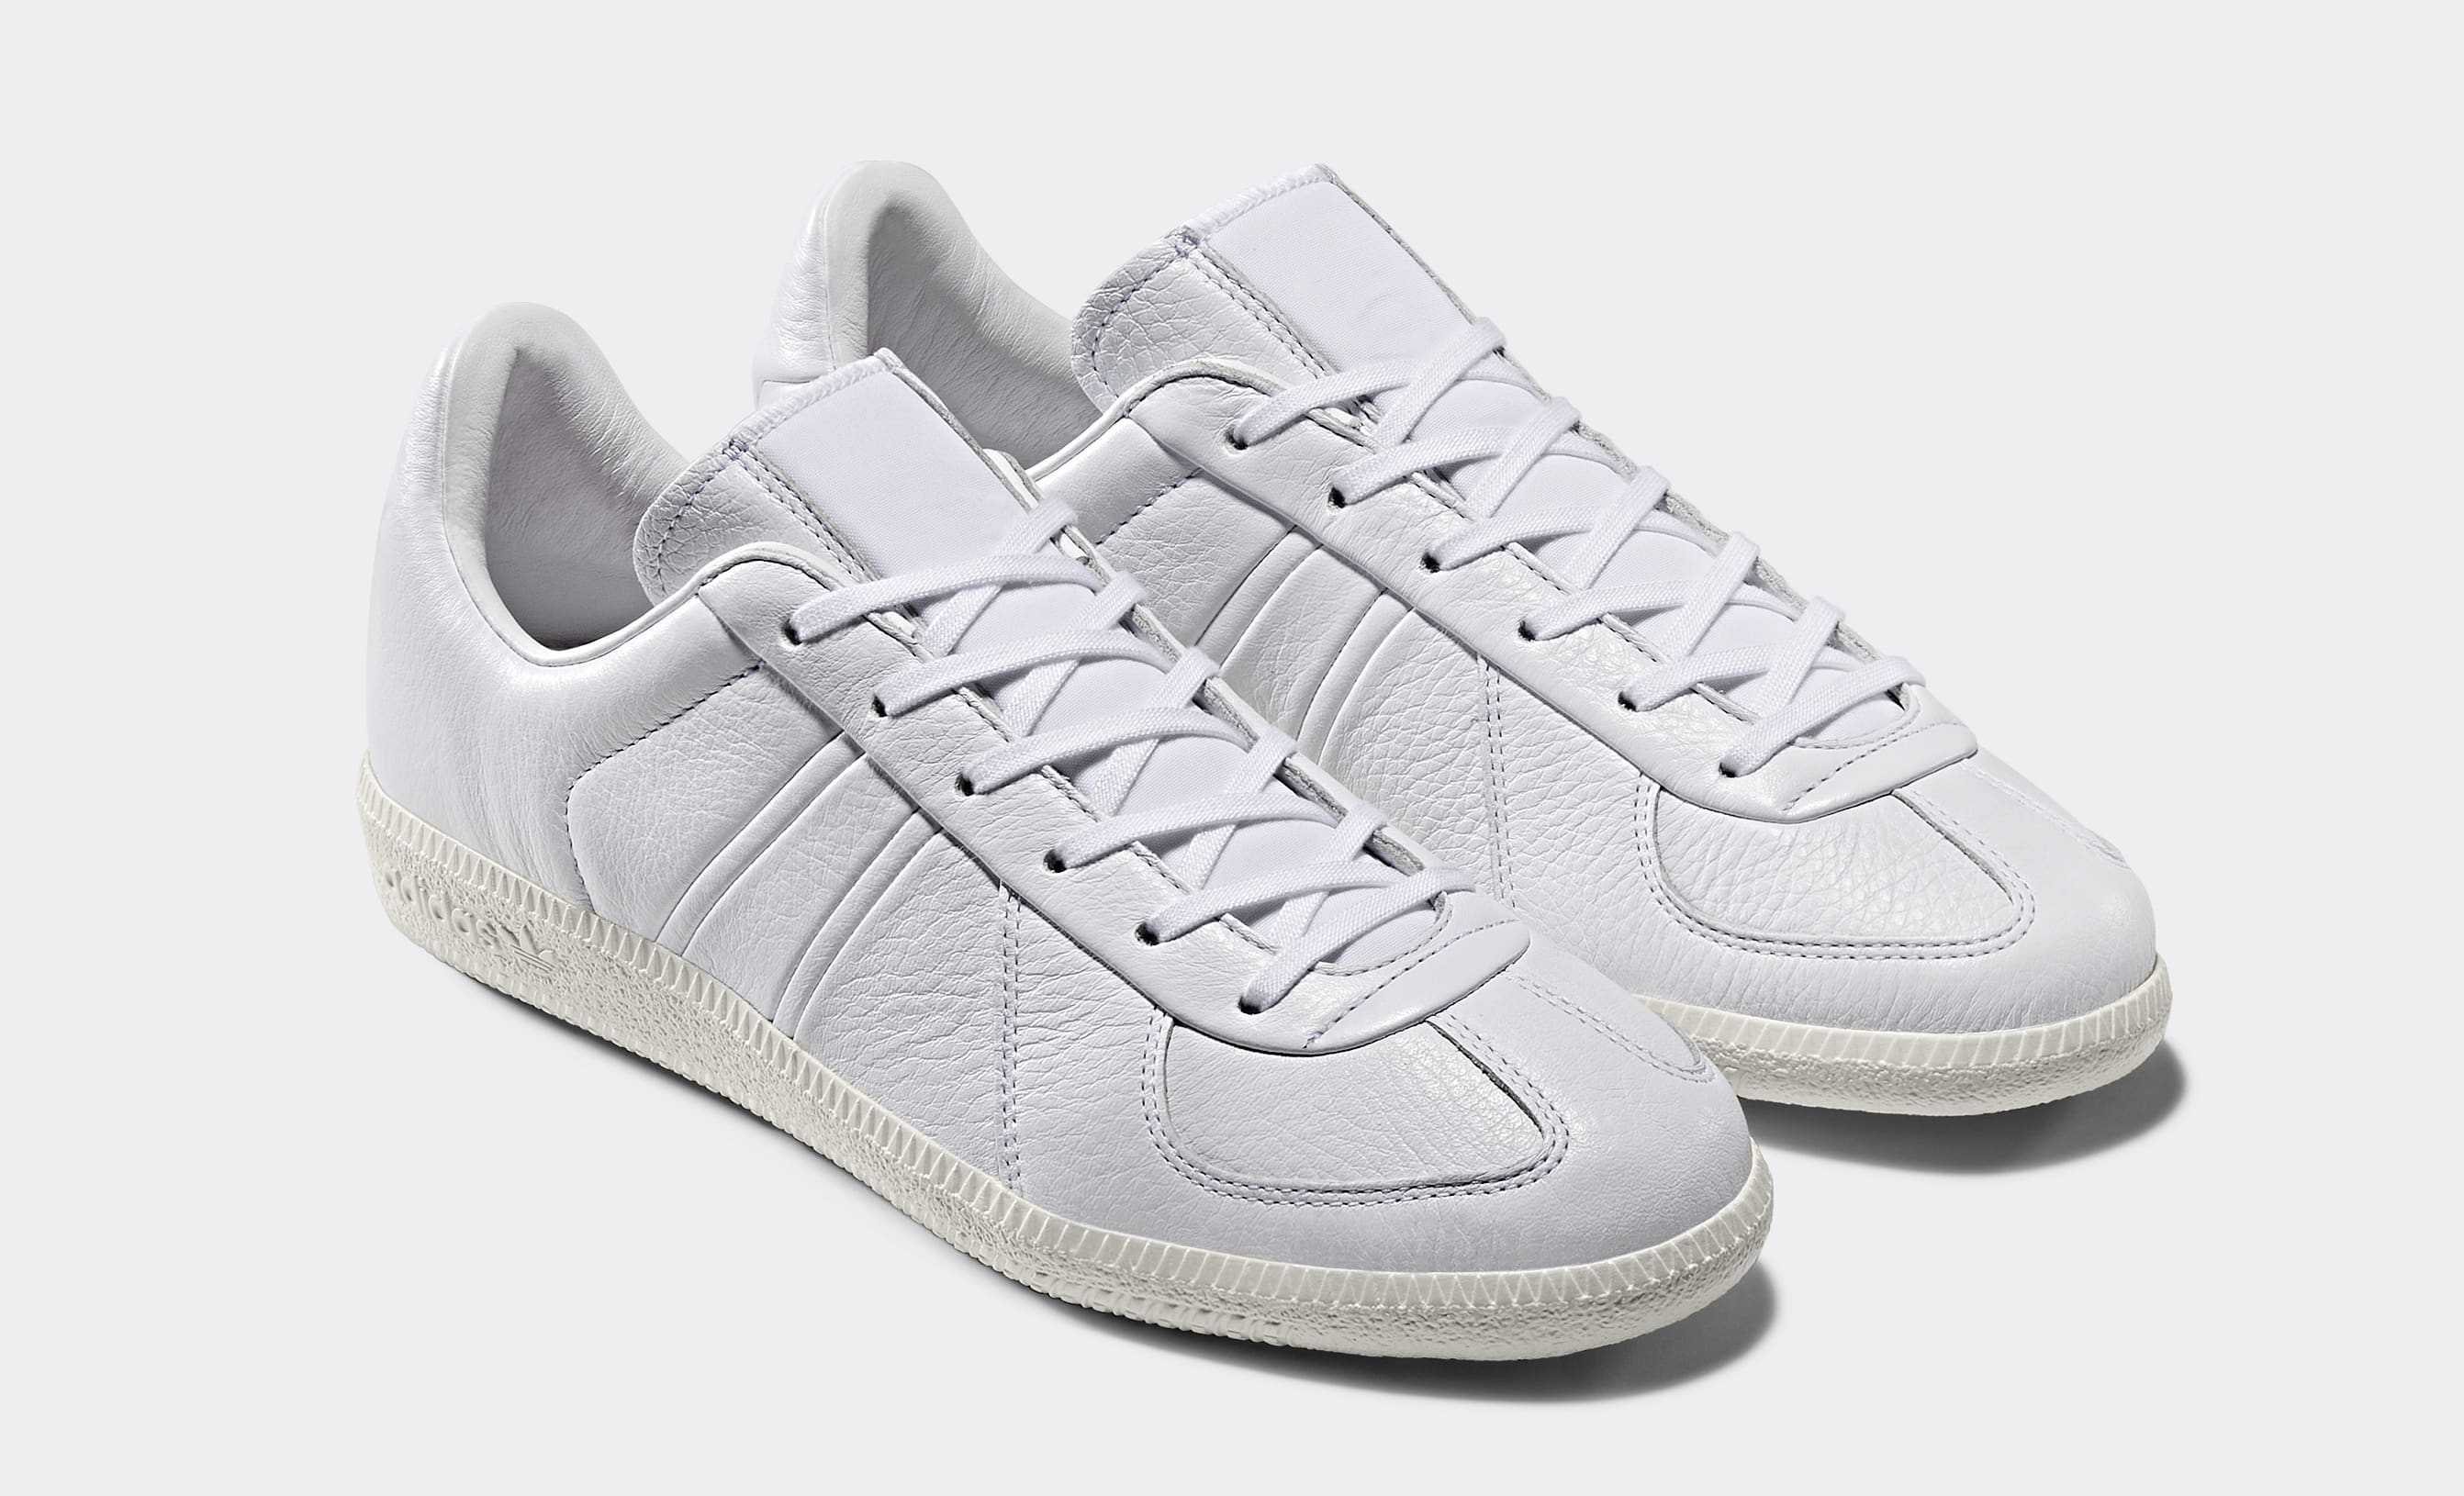 Oyster Holdings x Adidas BW Army BC0545 (Pair)